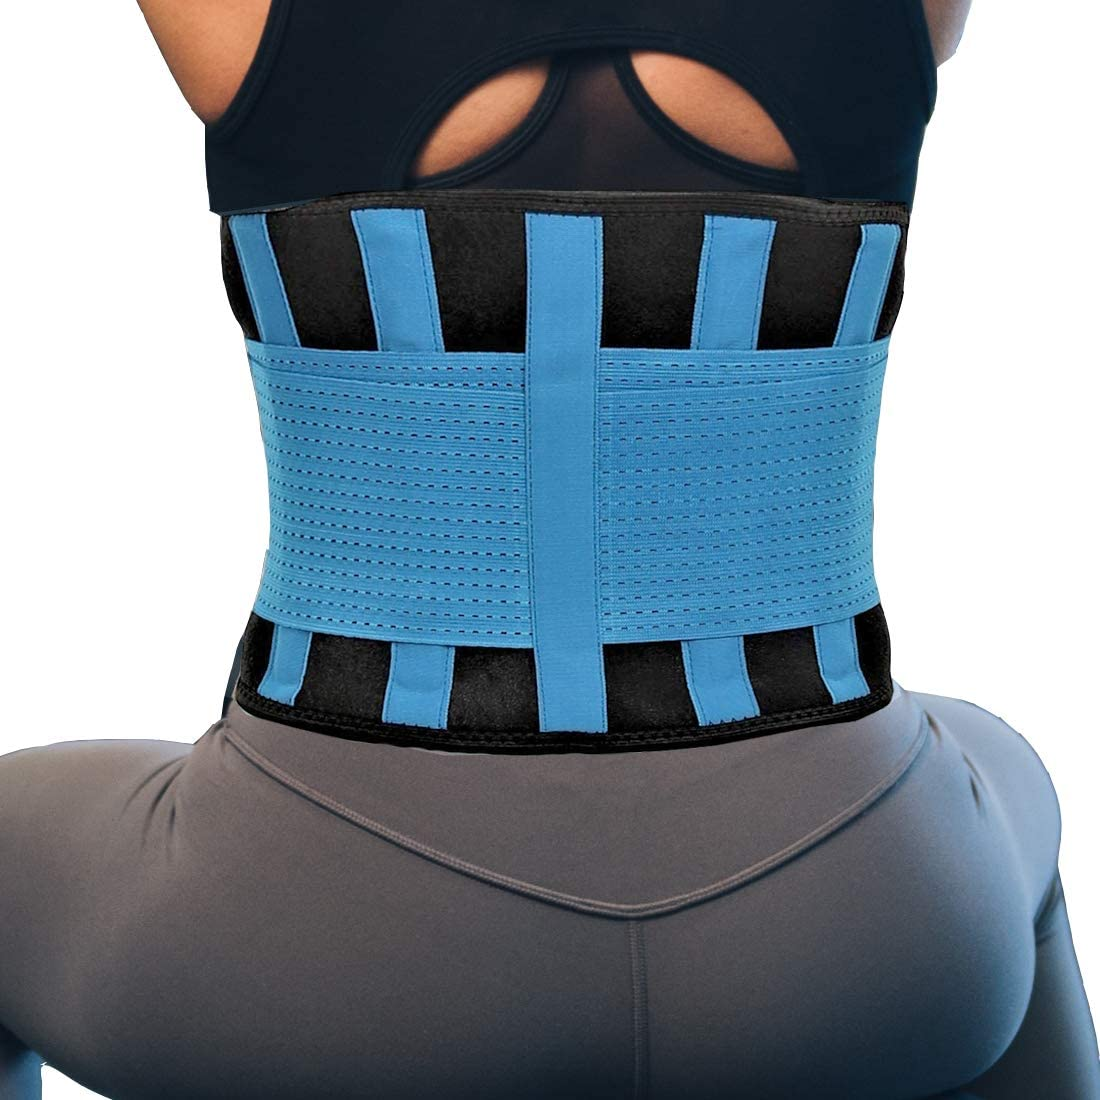 RiptGear Back Brace for Men and Women - Back Pain Relief Support for Lower Back Pain and Hip Pain - Lumbar Severe Back Pain Relief for Herniated Disc and Sciatica (Blue, Large)